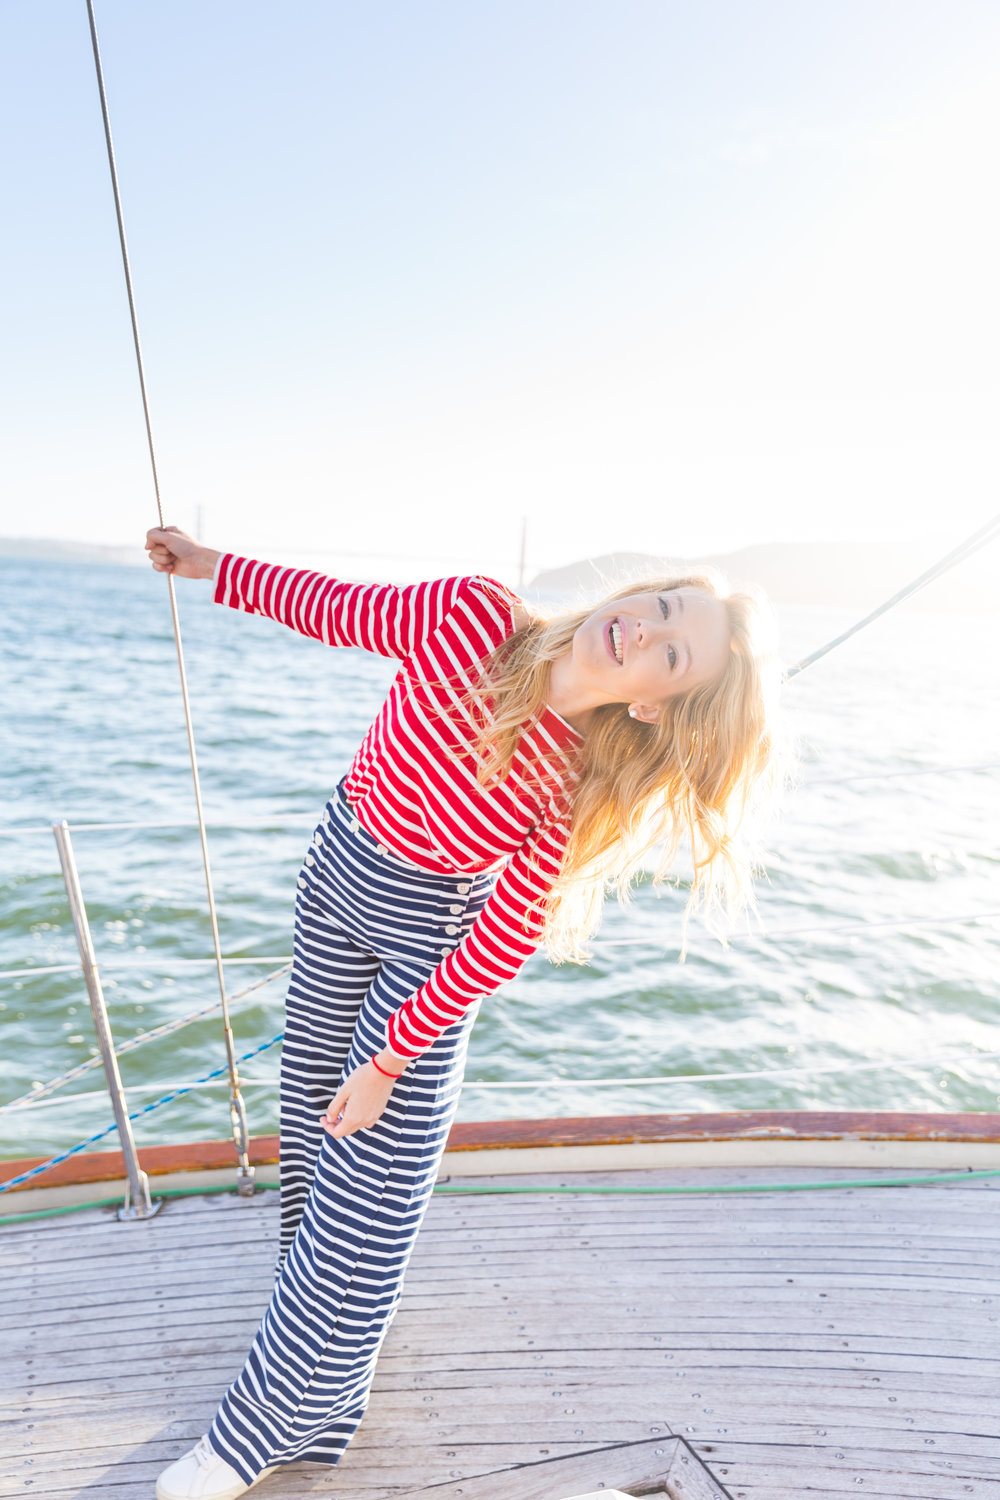 Striped Nautical Sunset Sail Outfit San Francisco-4.jpg